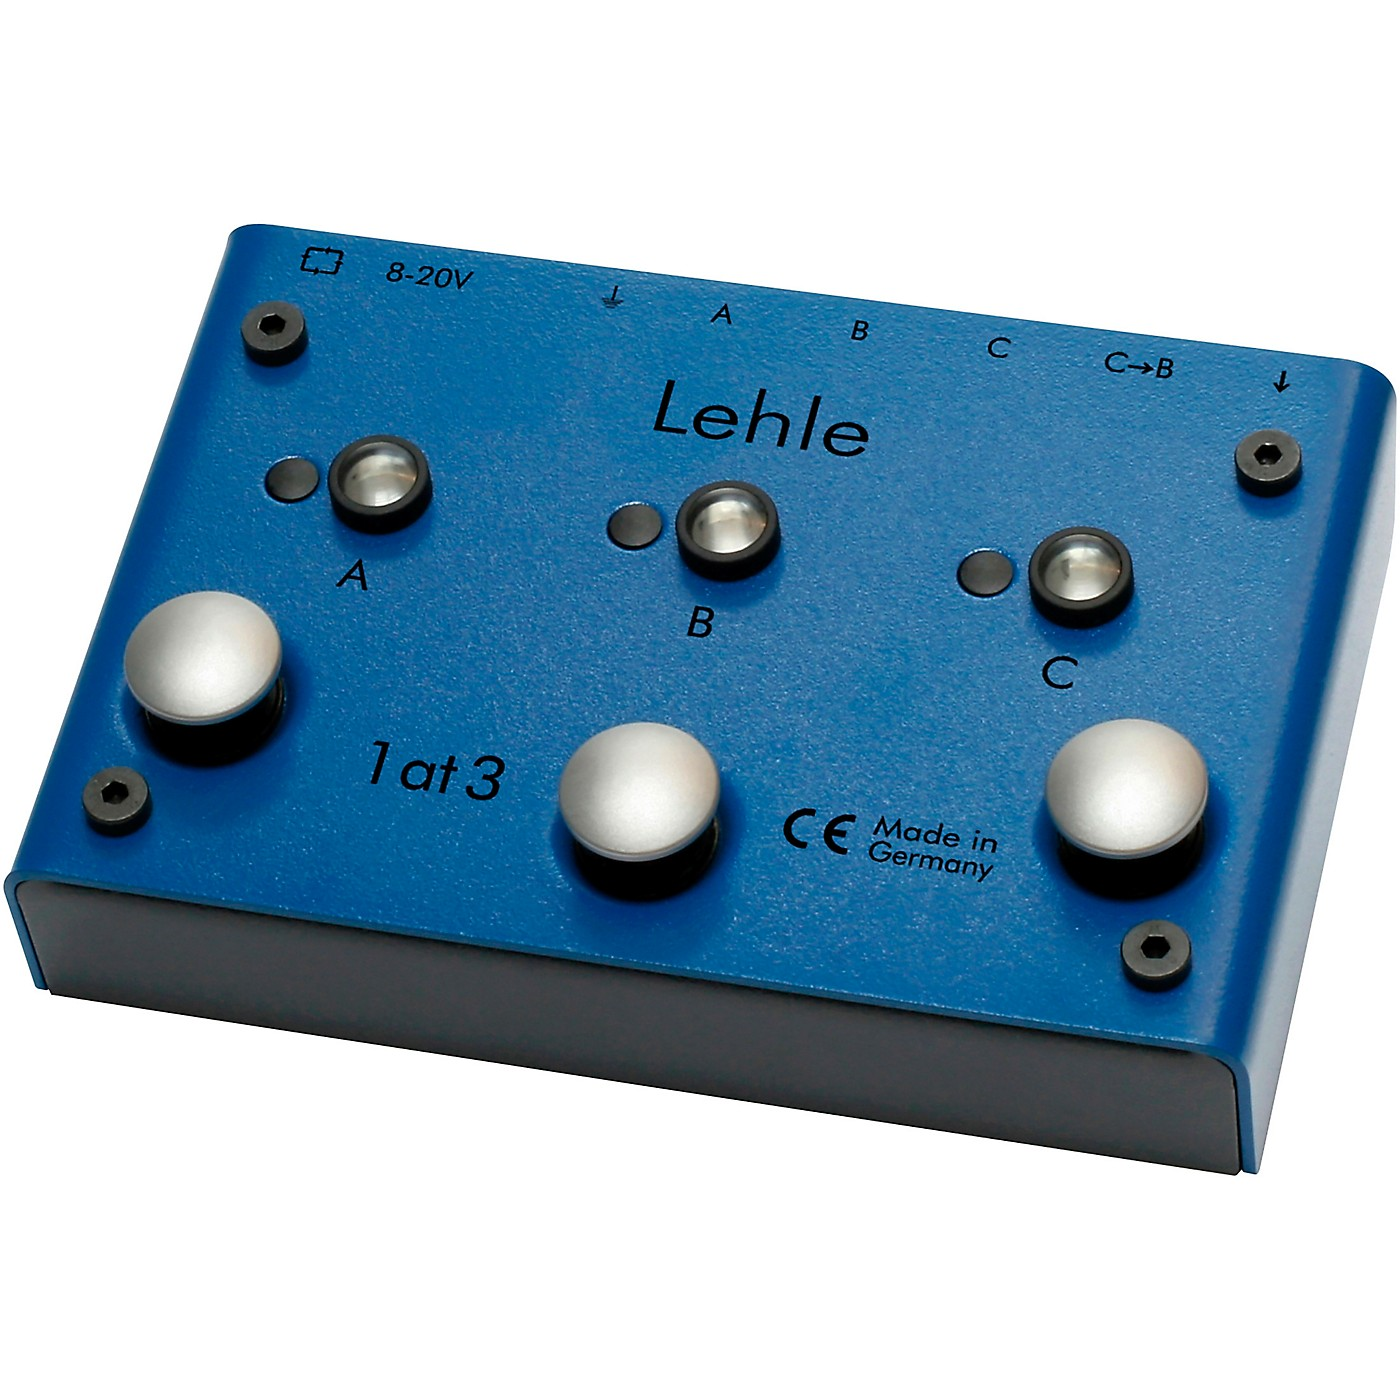 Lehle 1at3 SGoS Programmable True Bypass Switcher - I Instrument to 3 Amps/2 Amp, 1 Effects Loop thumbnail